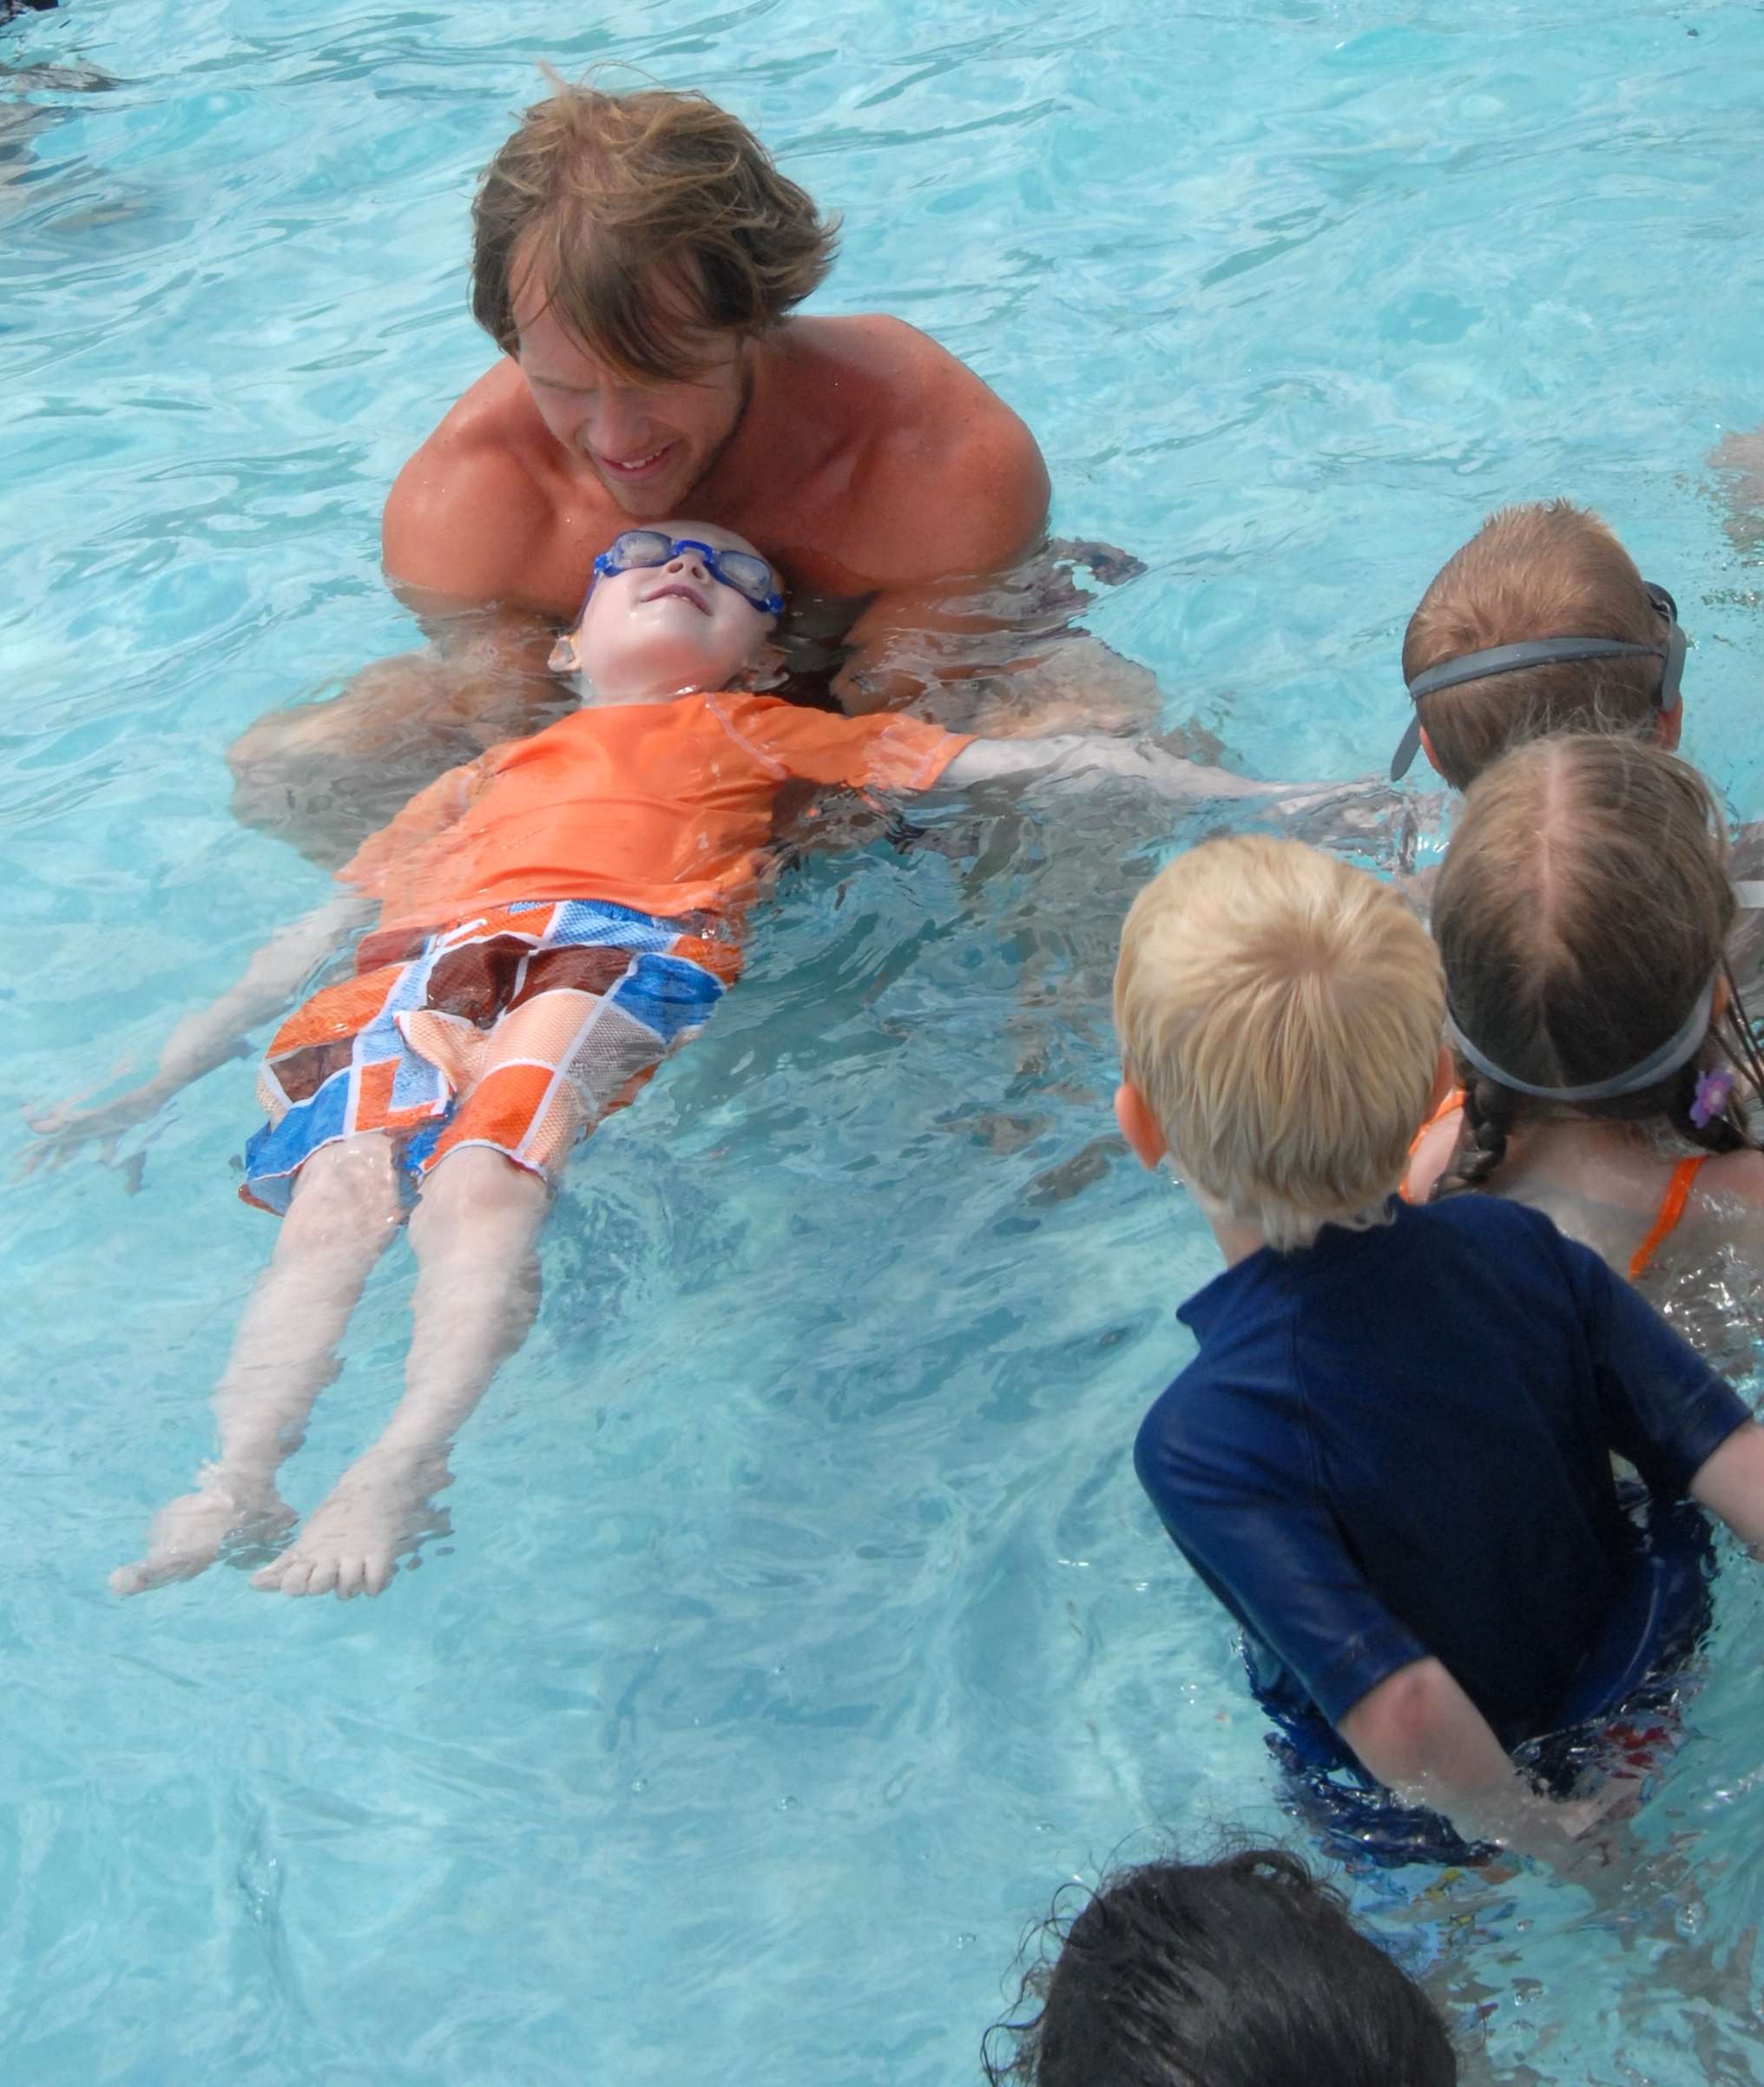 dason tucker a head lifeguard at china beach pool shows children how to float